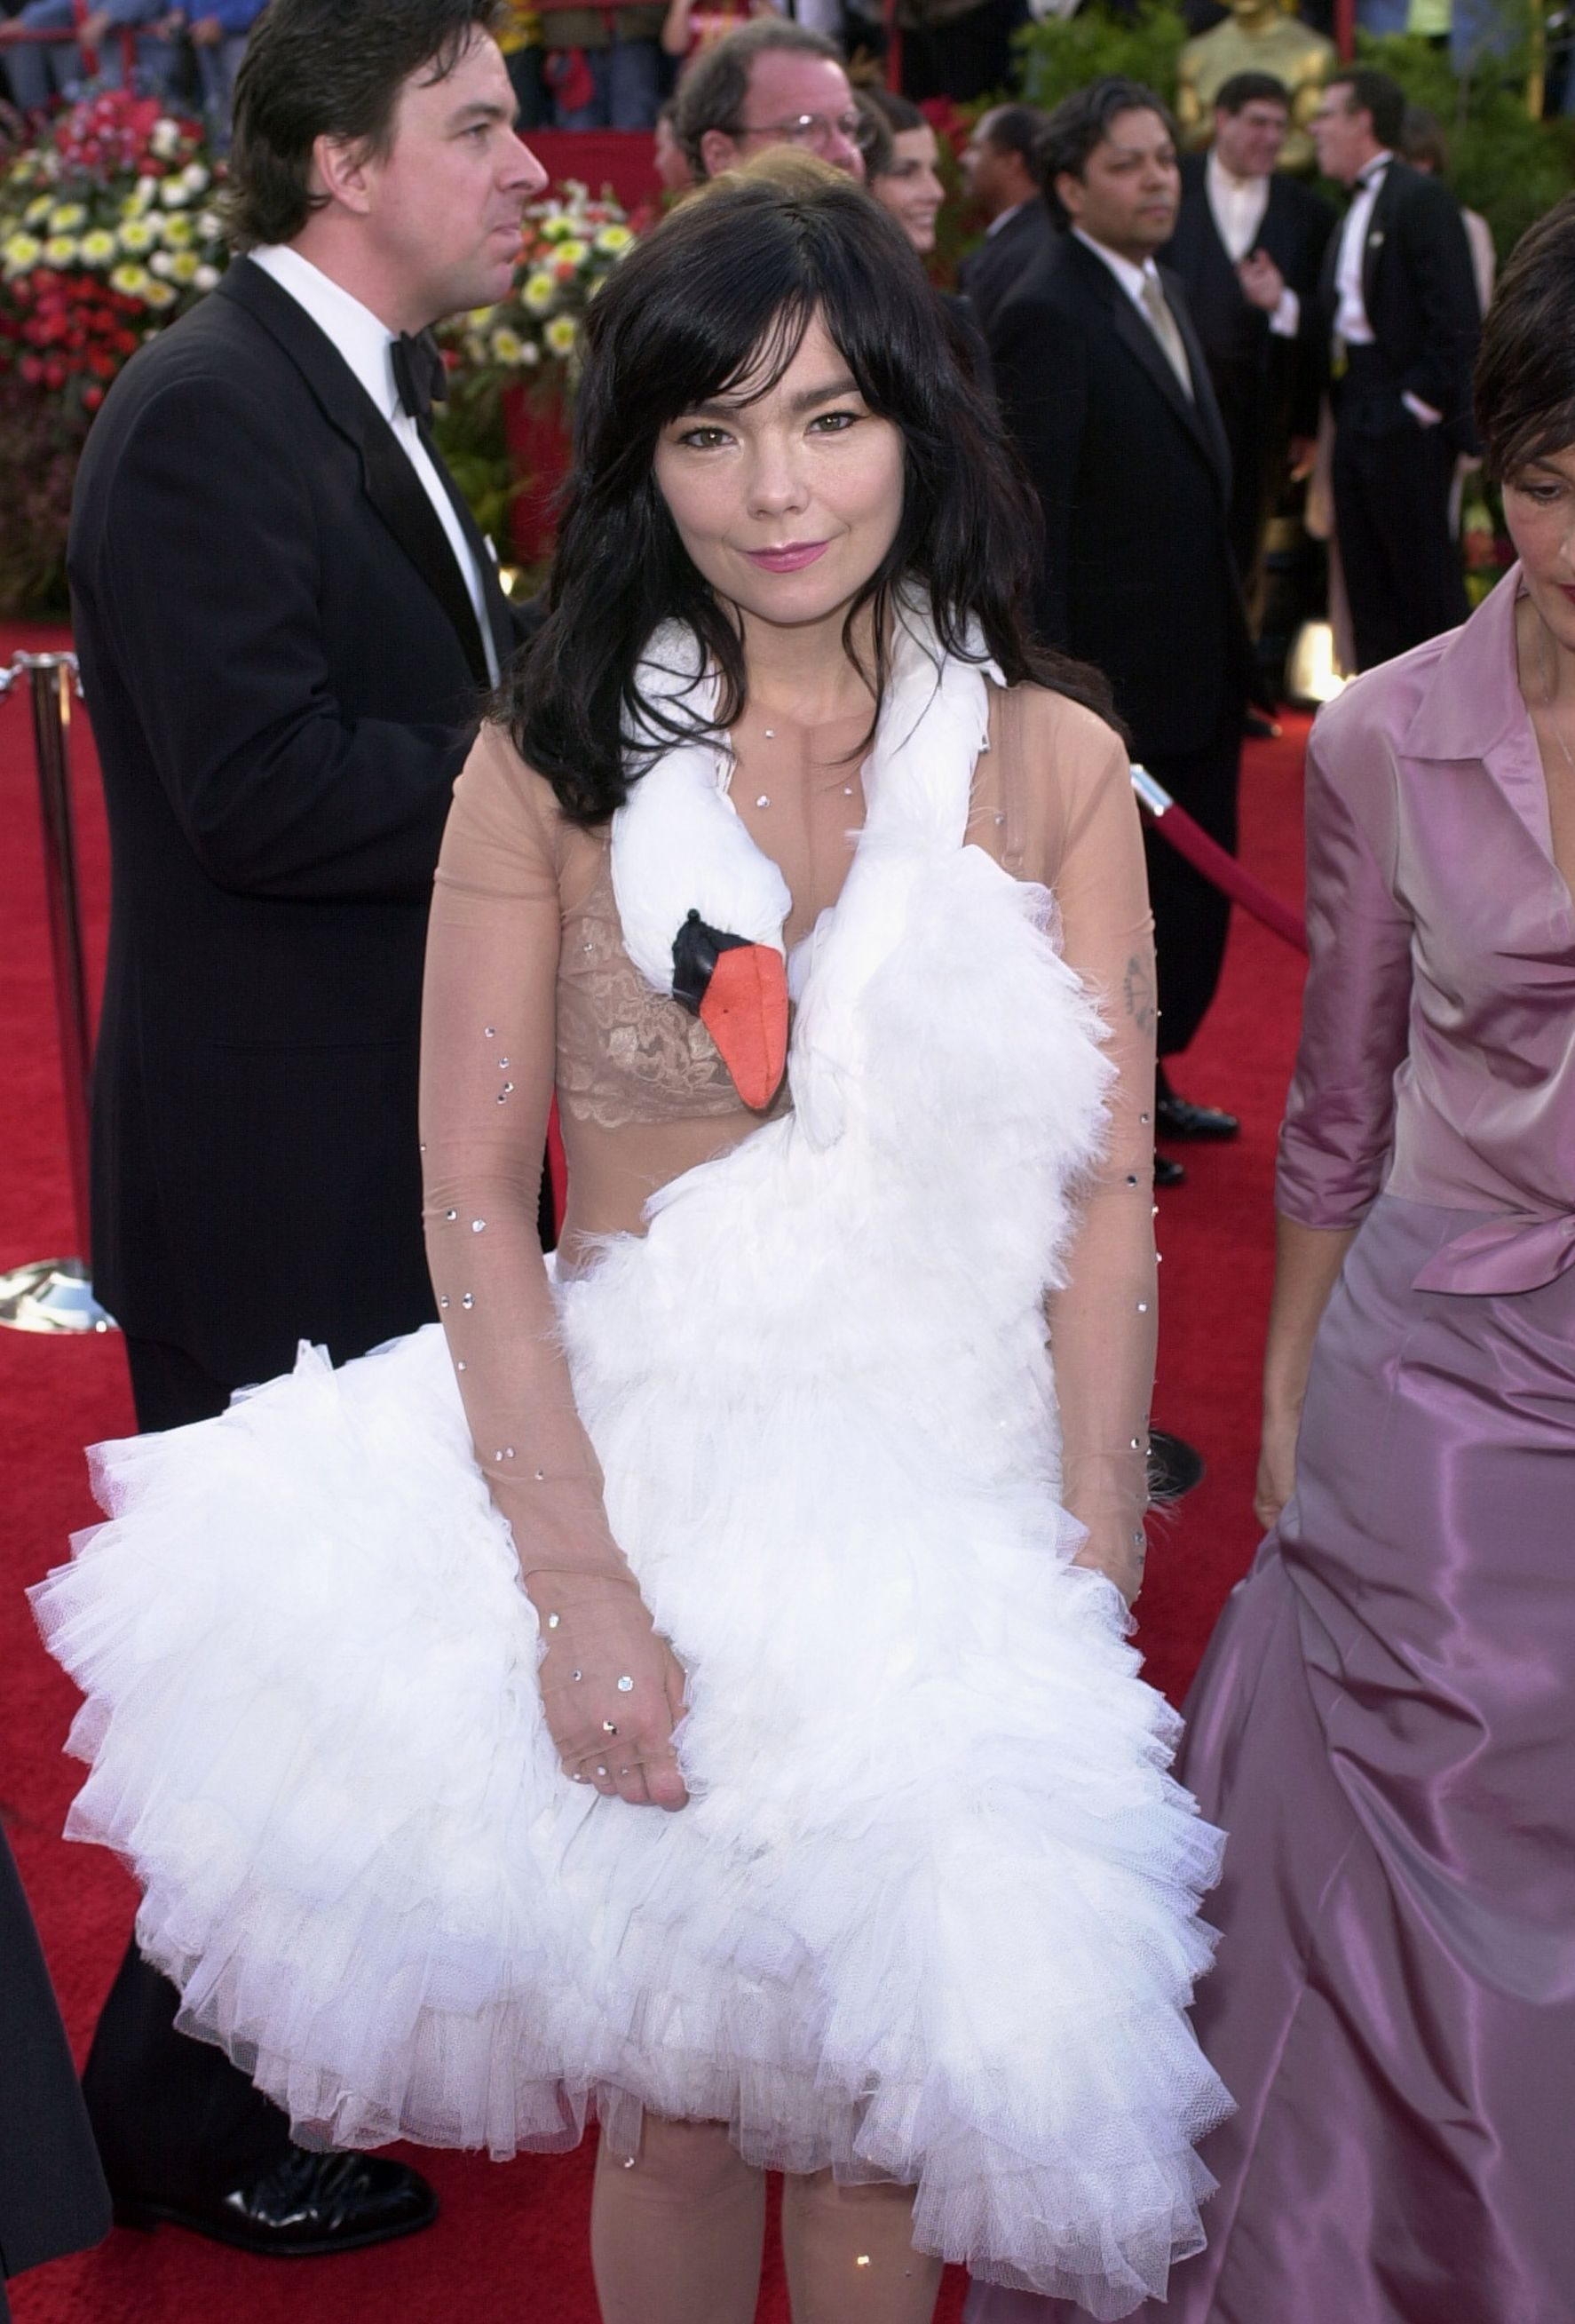 "Mandatory Credit: Photo by Michael Caulfield/AP/Shutterstock (6464400a) Bjork Singer Bjork, wearing a Marjan Pejoski swan gown, arrives at the 73rd annual Academy Awards, in Los Angeles. Bjork is nominated for best song for ""I've Seen it All"" from the film ""Dancer in the Dark 2001 Academy Awards, Los Angeles, USA"